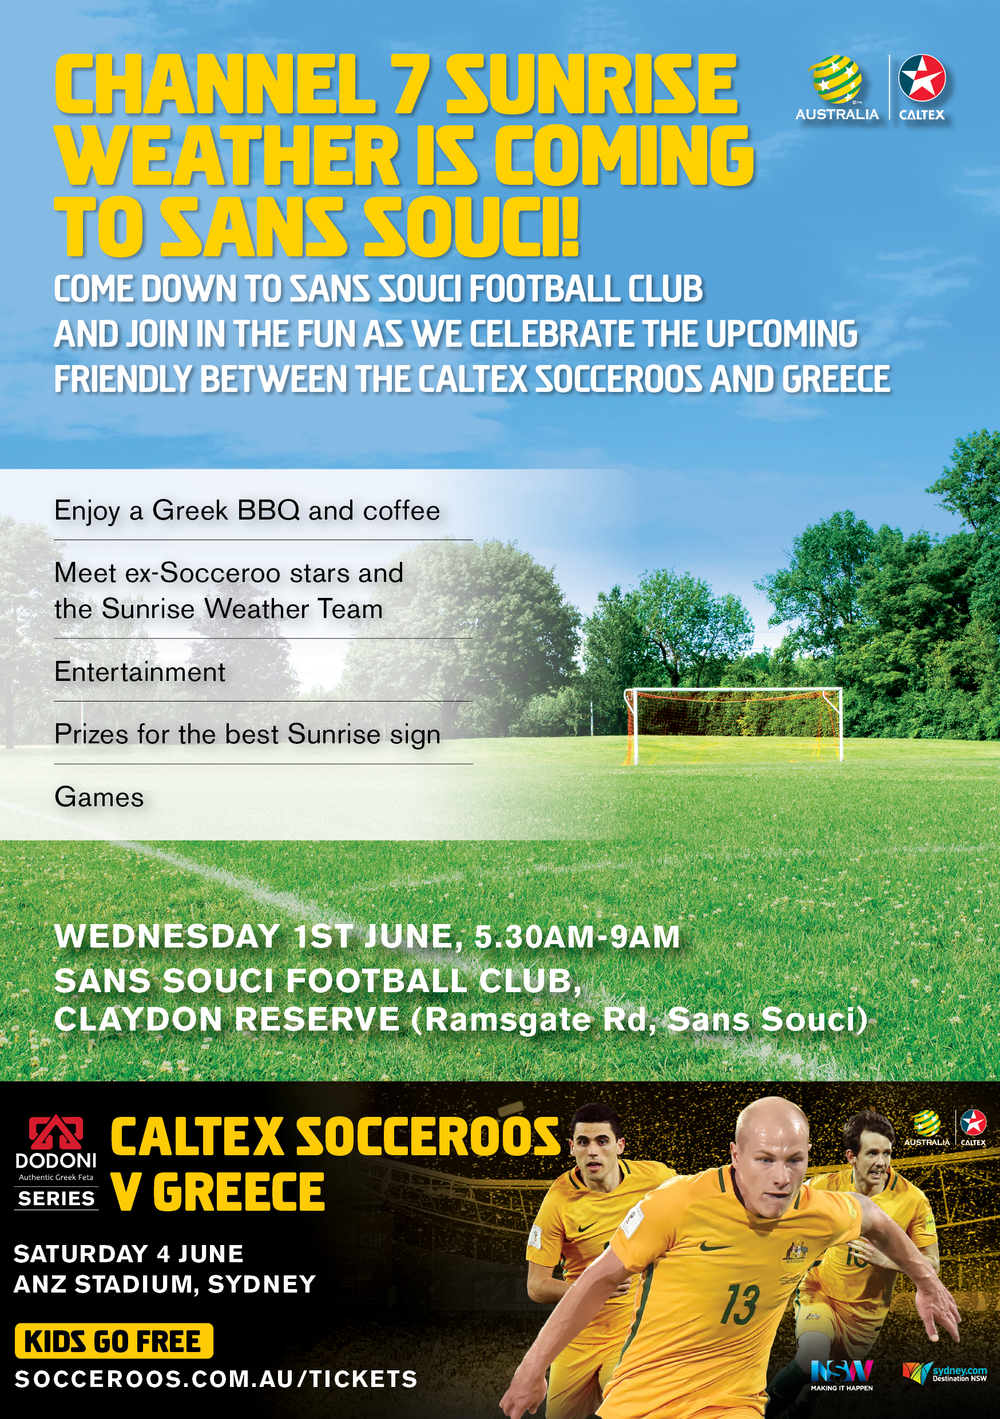 13321_FOOTBALL_Socceroos Greek Flyer_A5_Final.jpg